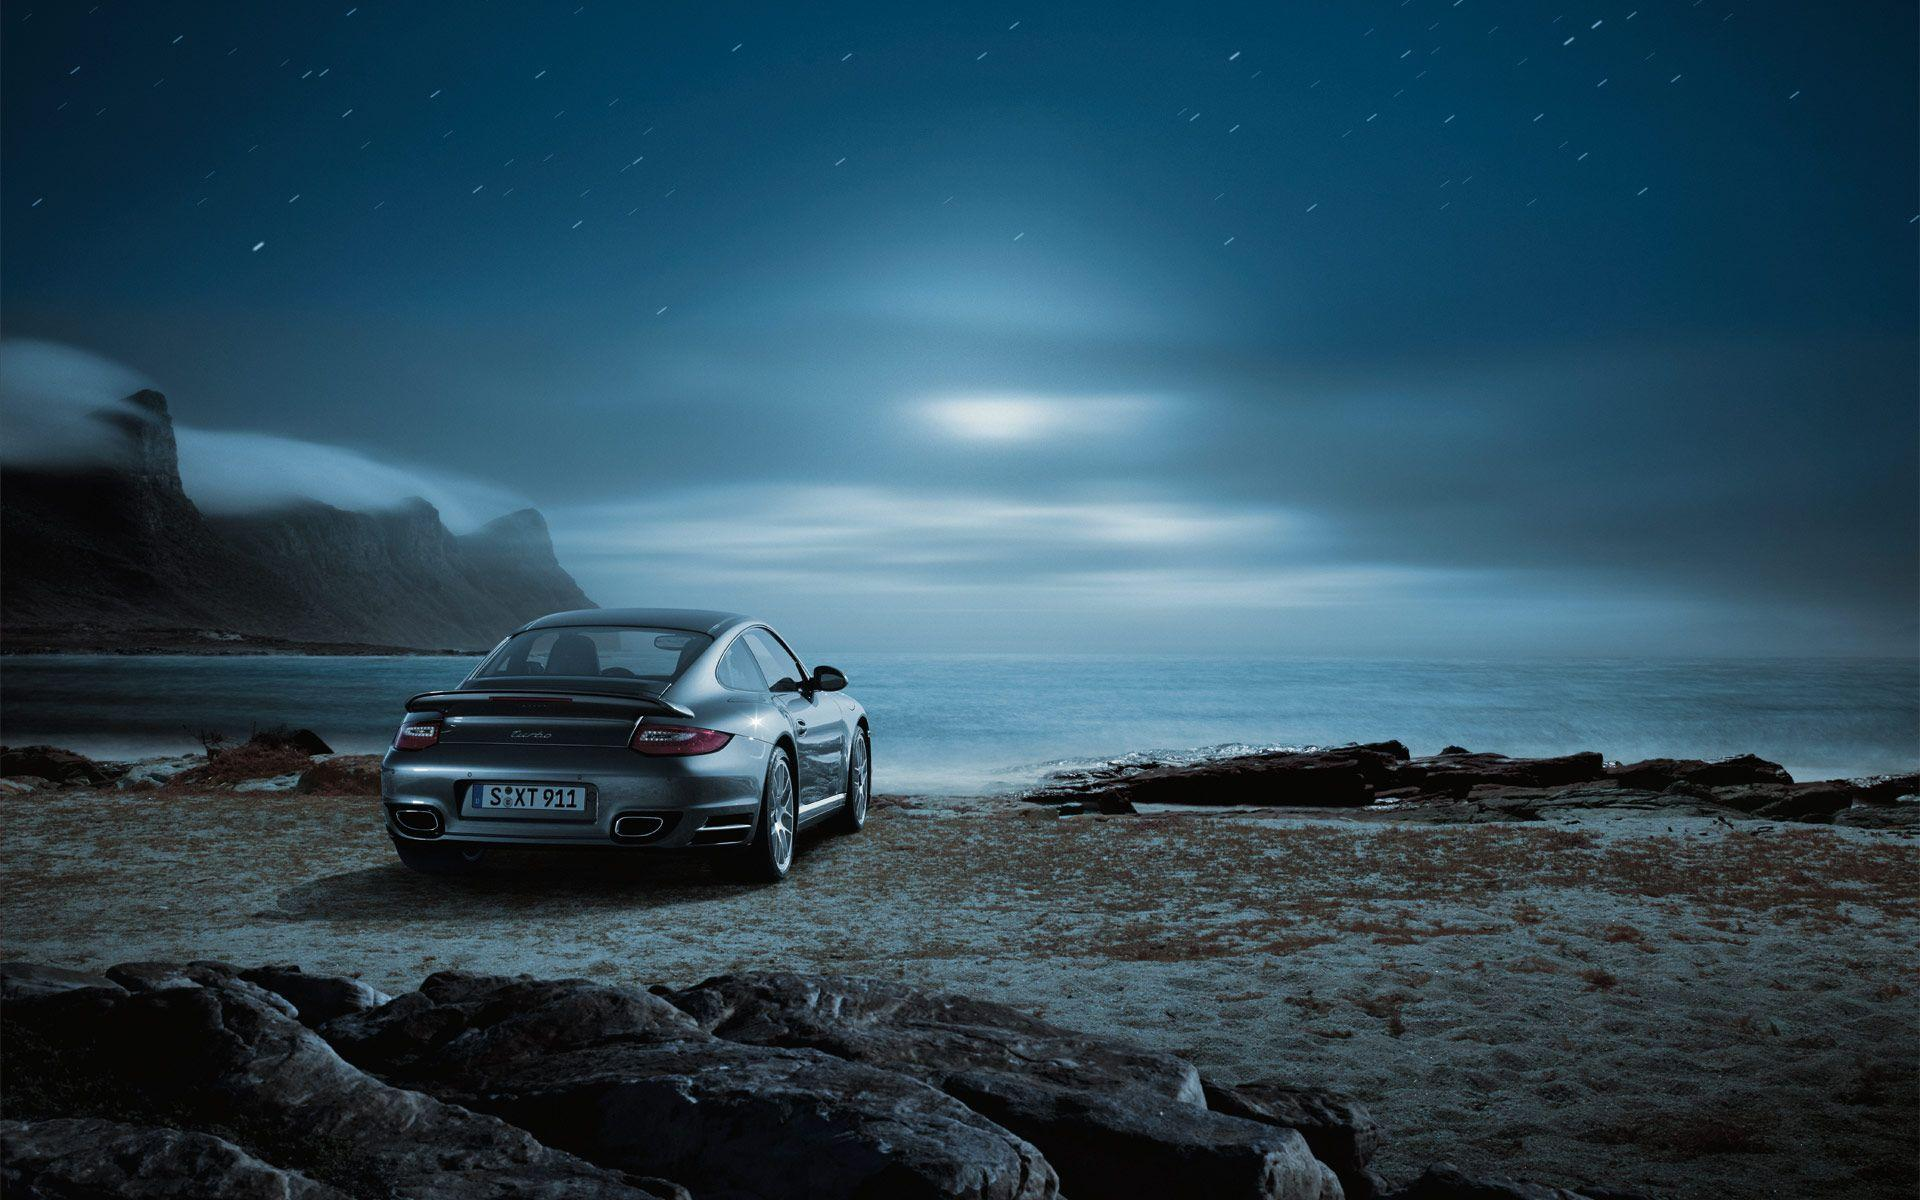 porsche 911 wallpapers wallpaper cave